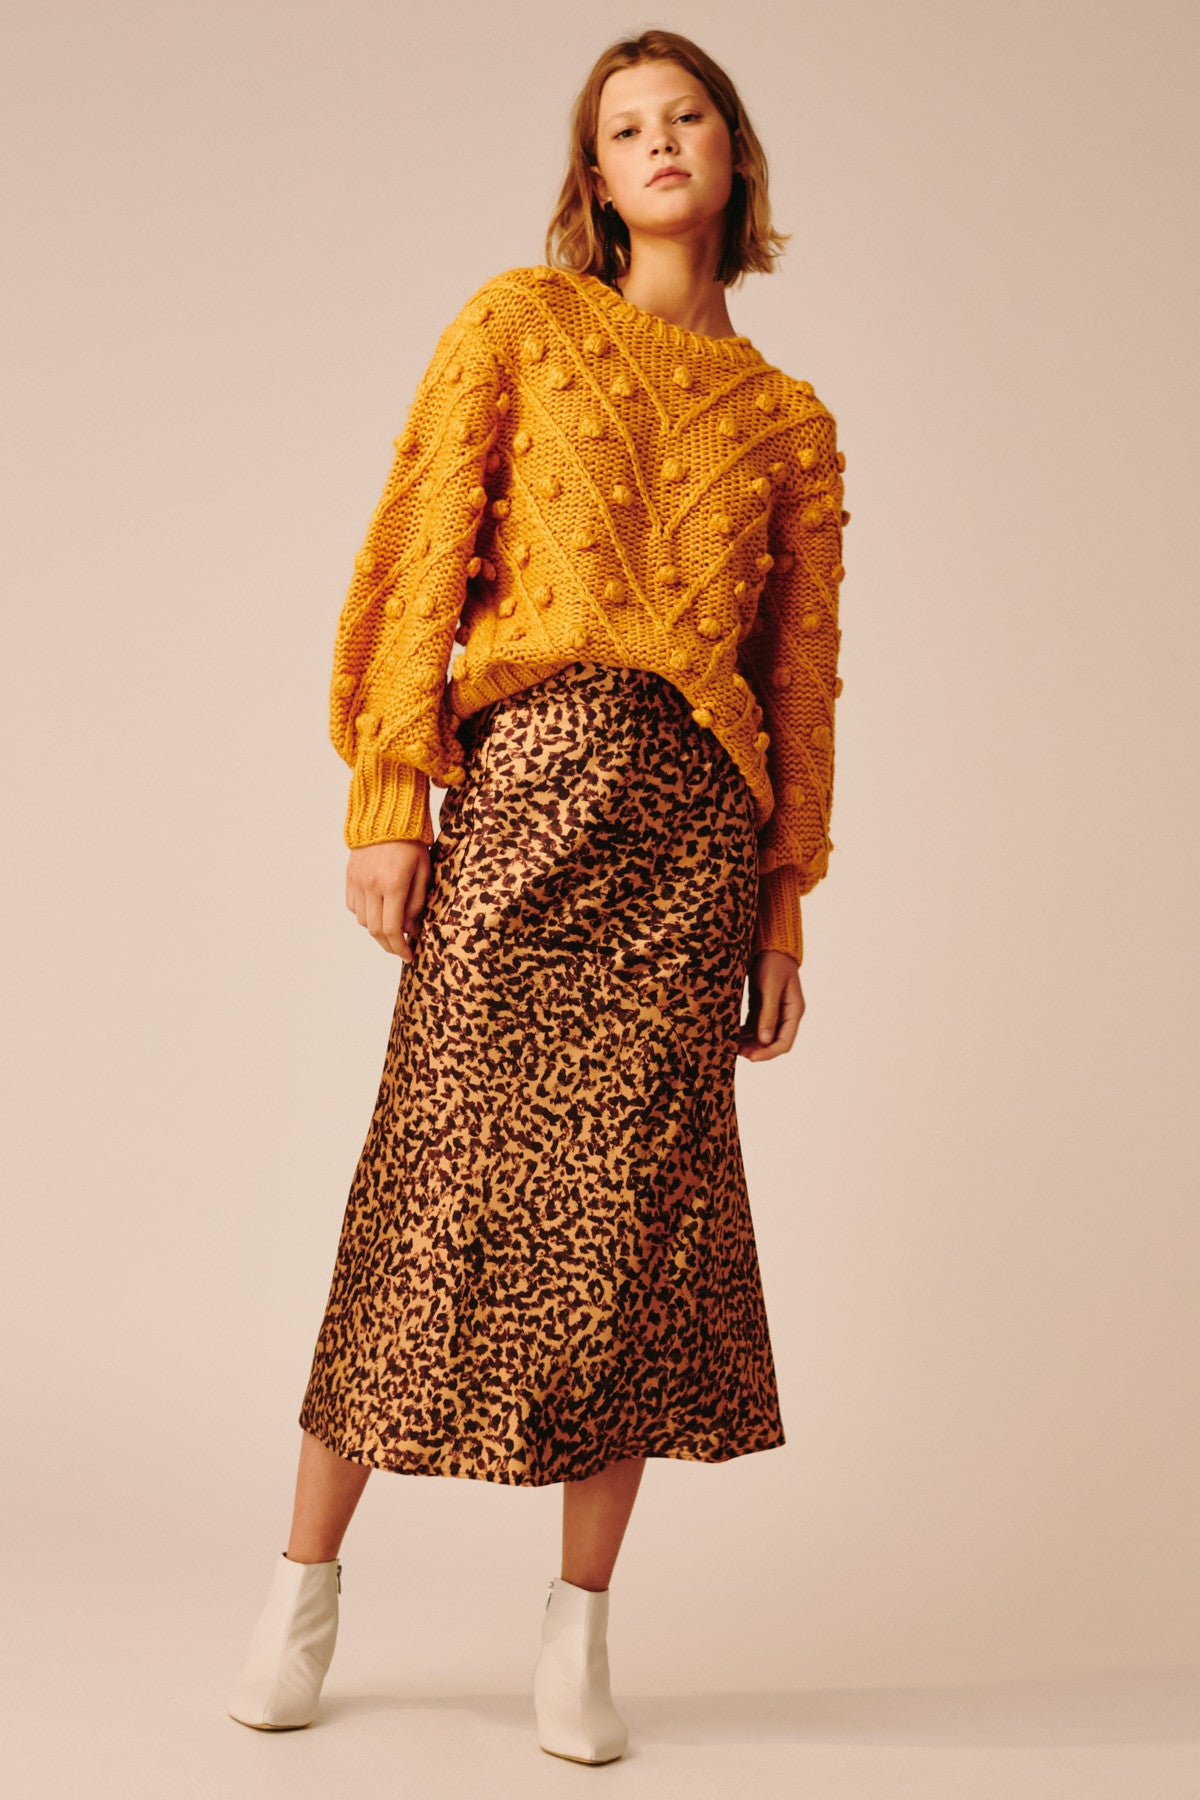 POLARISED SKIRT mustard painted spot